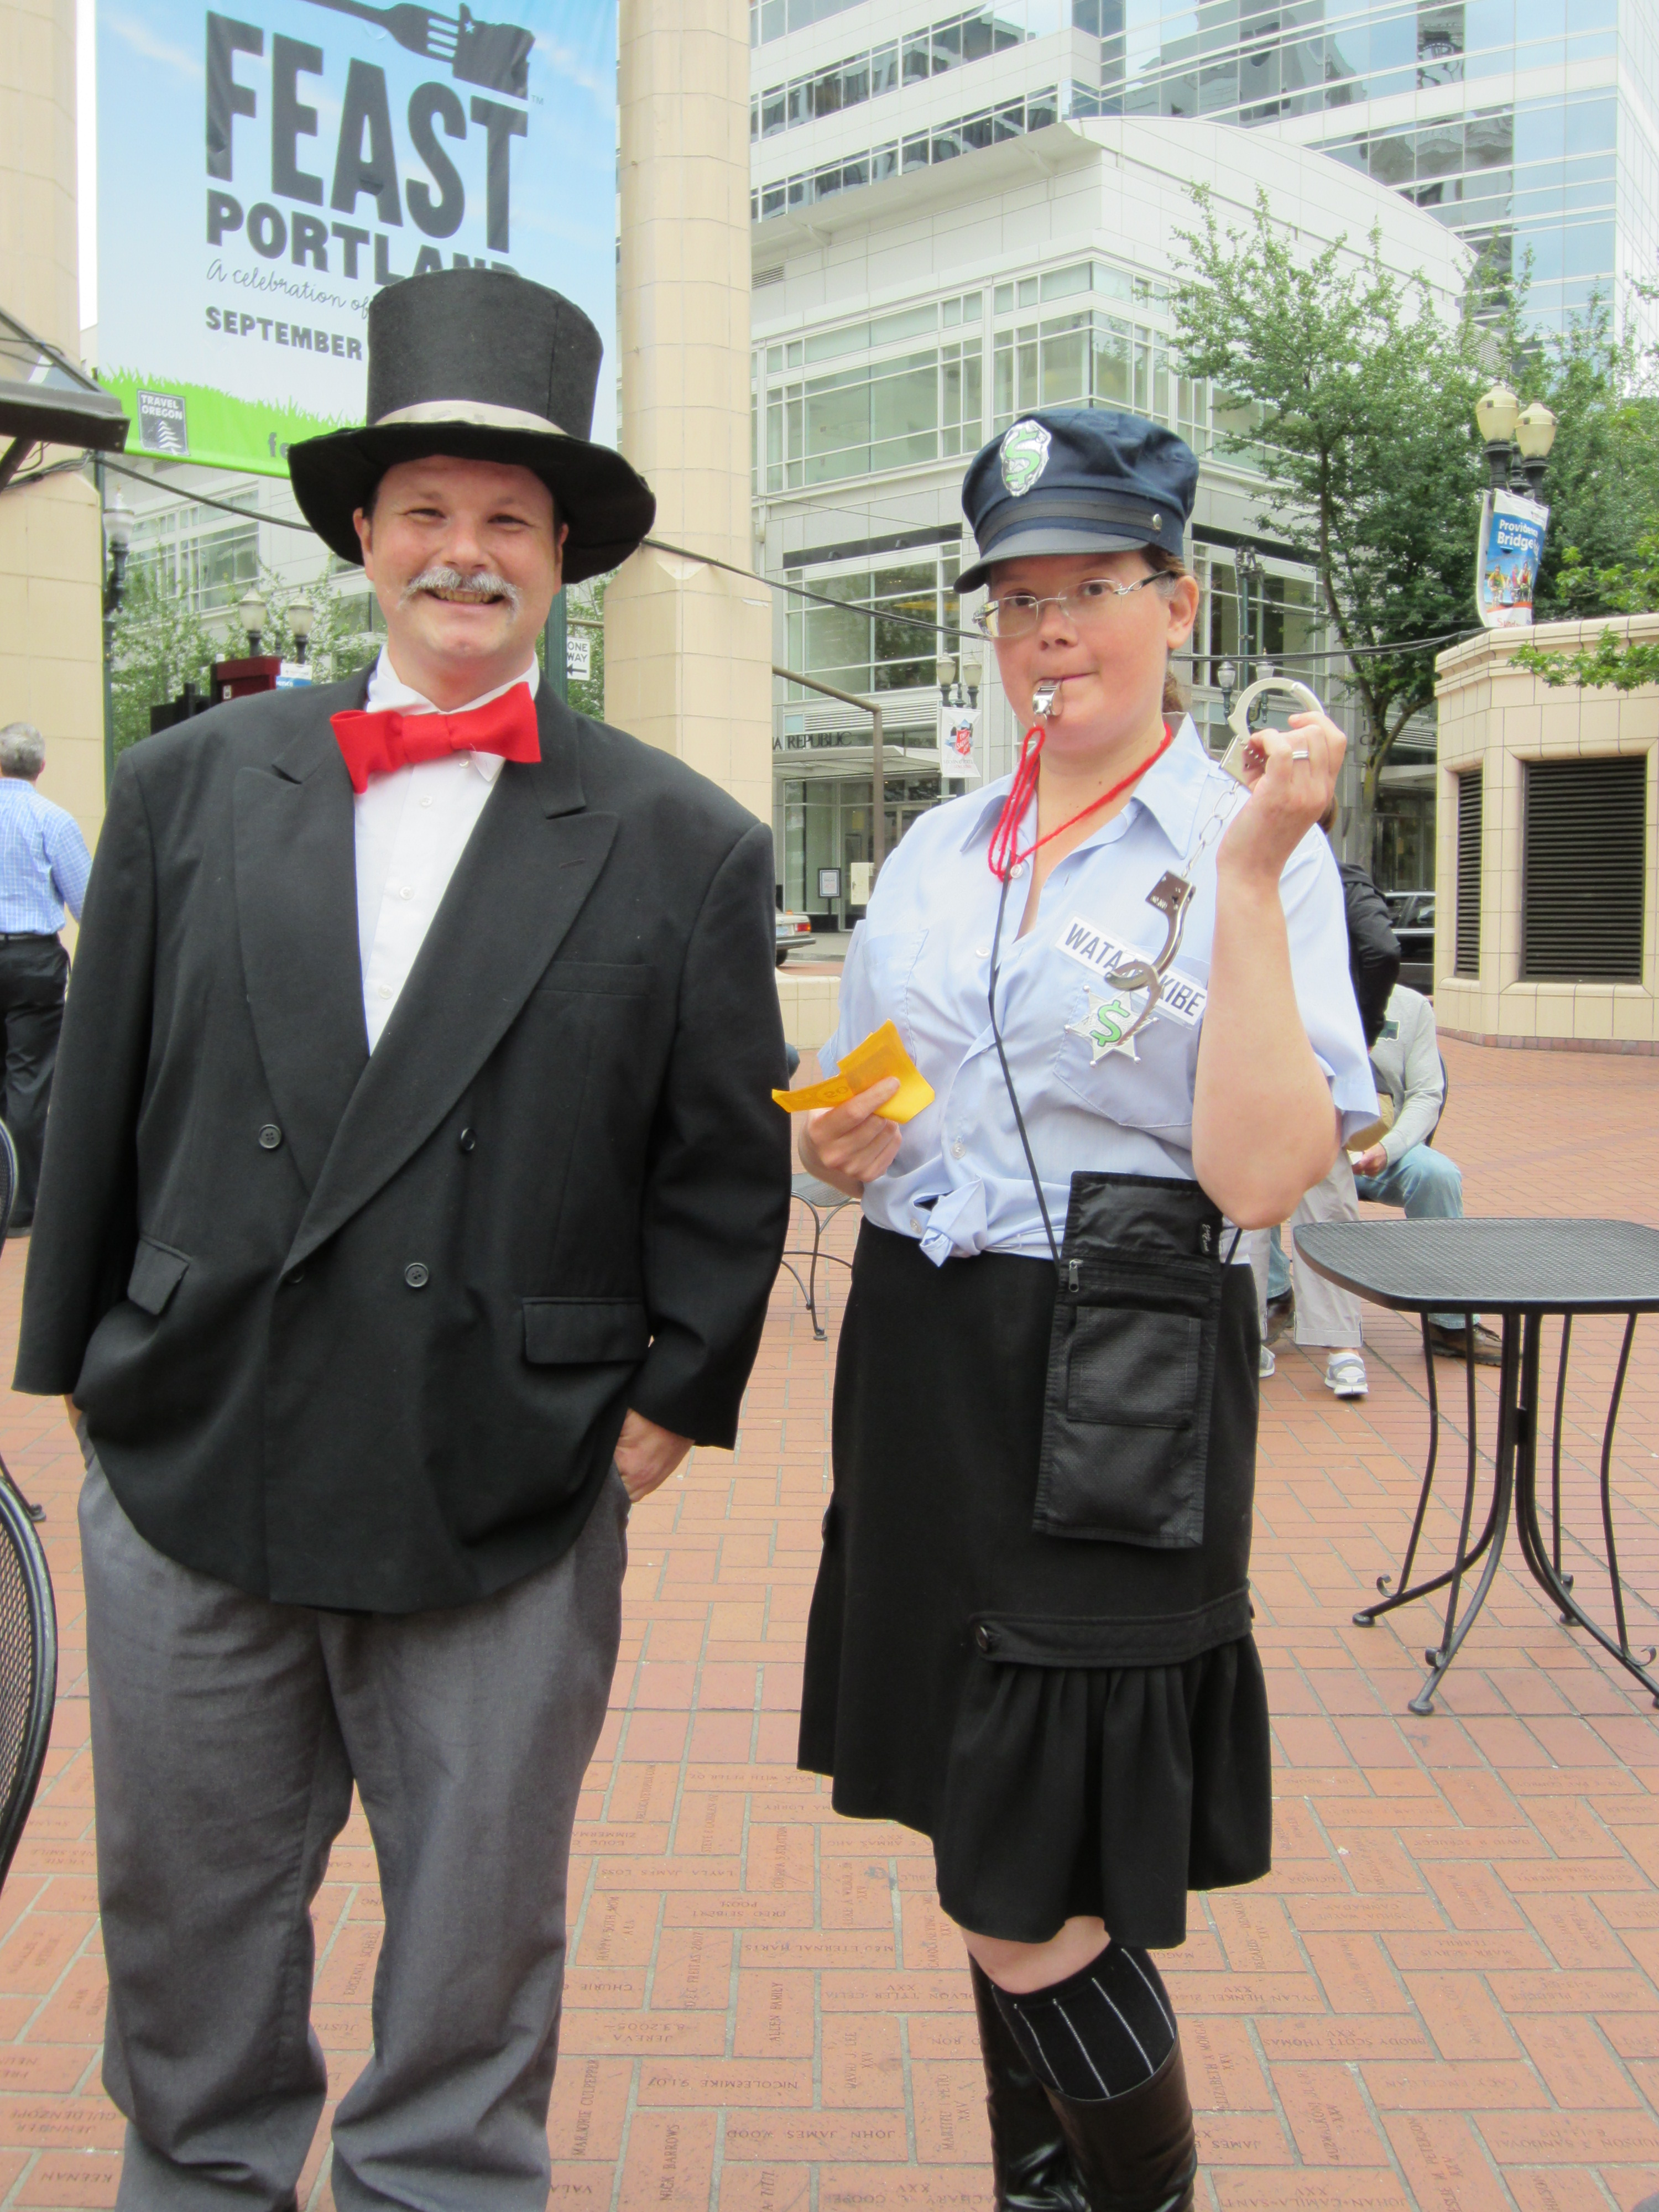 The Cop and The Banker from the Monopoly Game